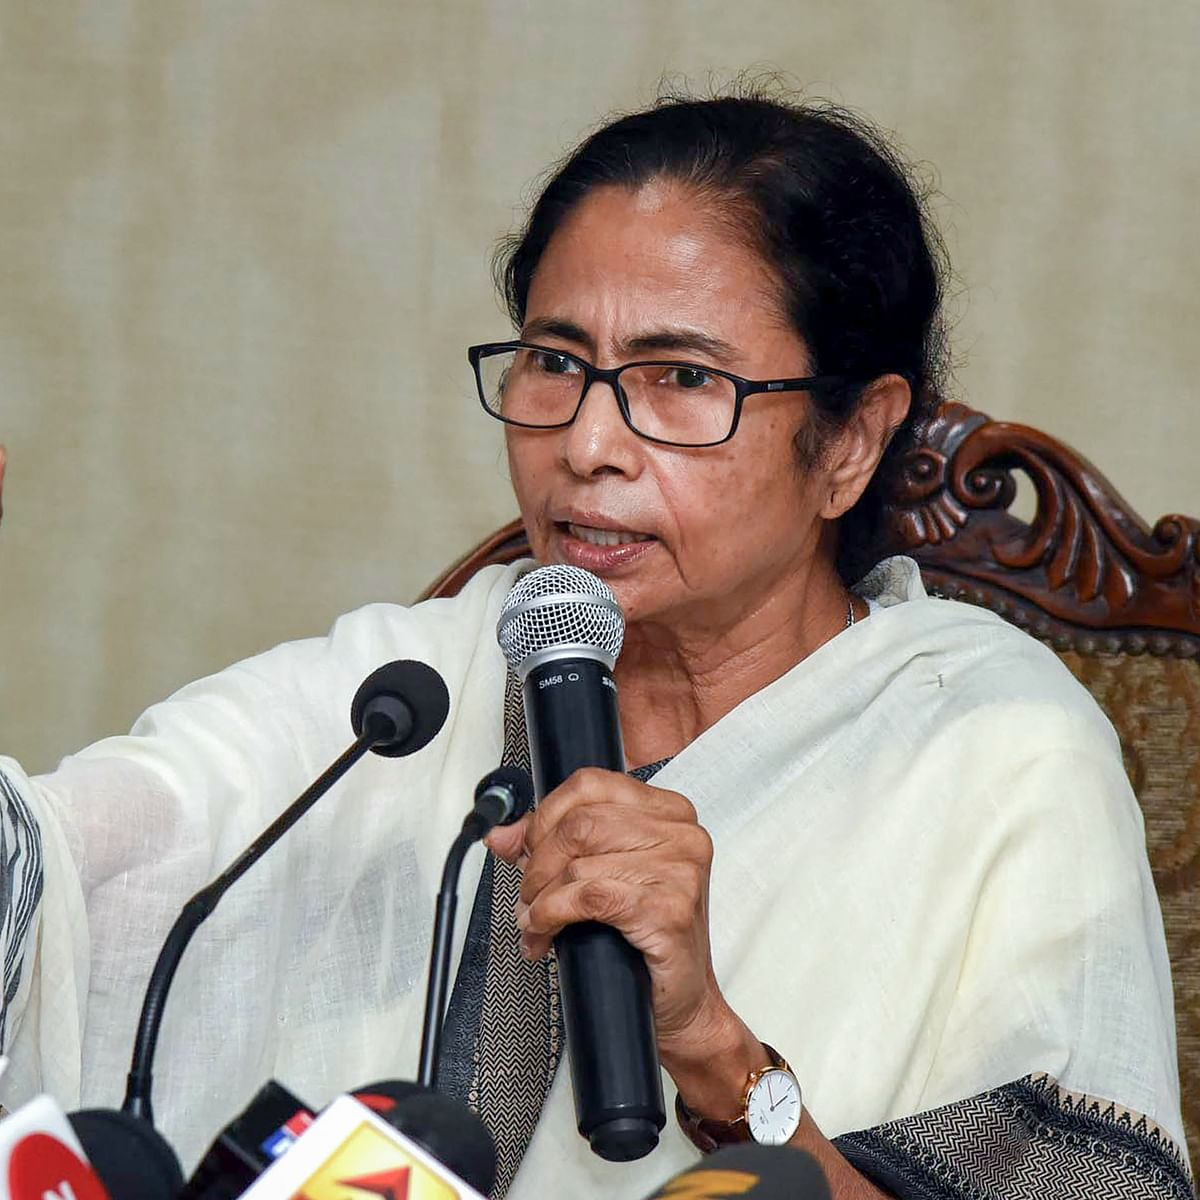 People living in Bengal will continue living the same way: Mamata on NRC